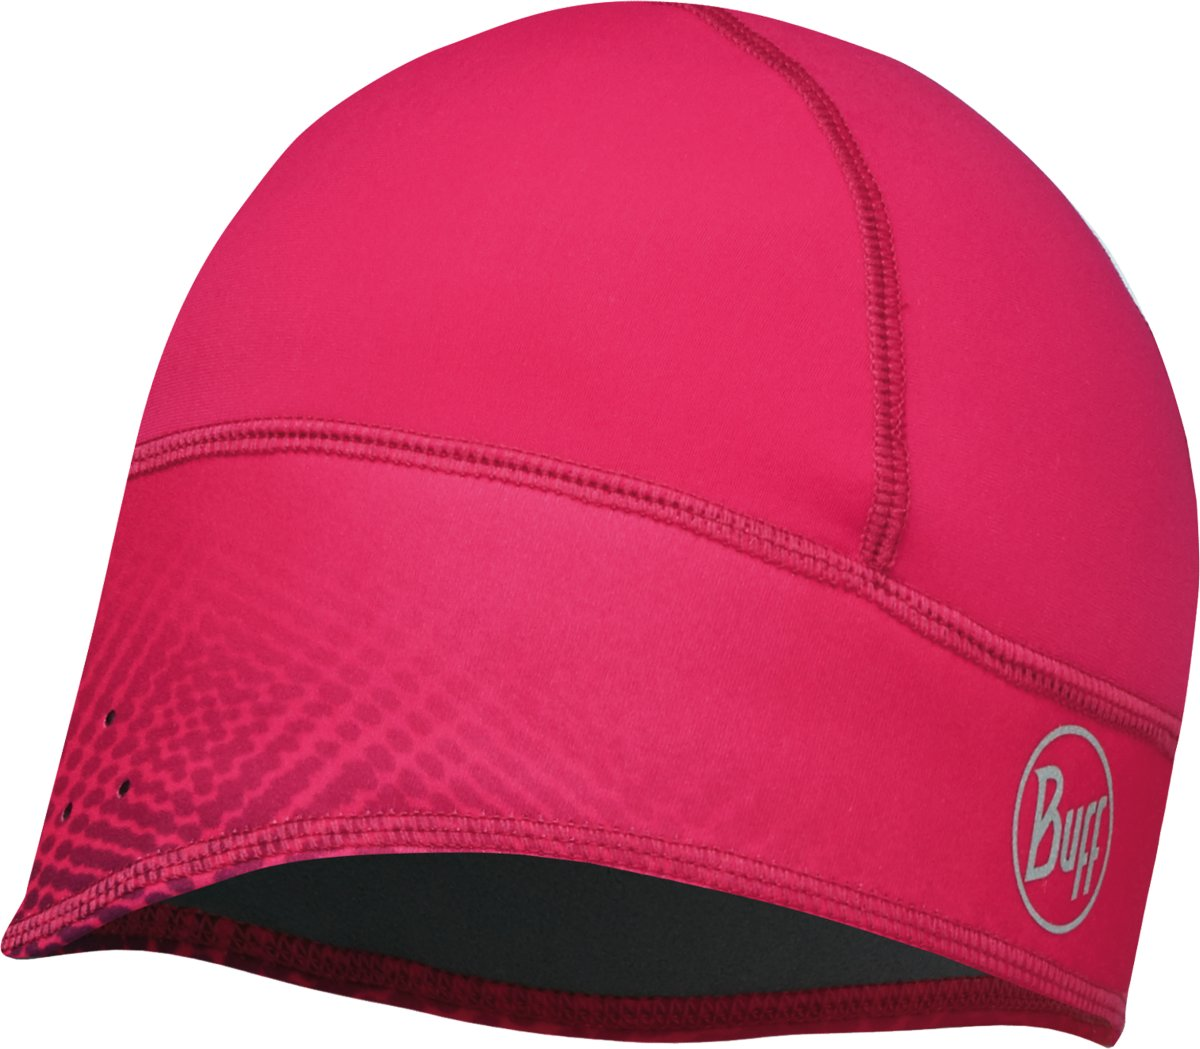 Шапка Buff Windproof Tech Fleece Hat xtreme pink BU 113390.538.10.00